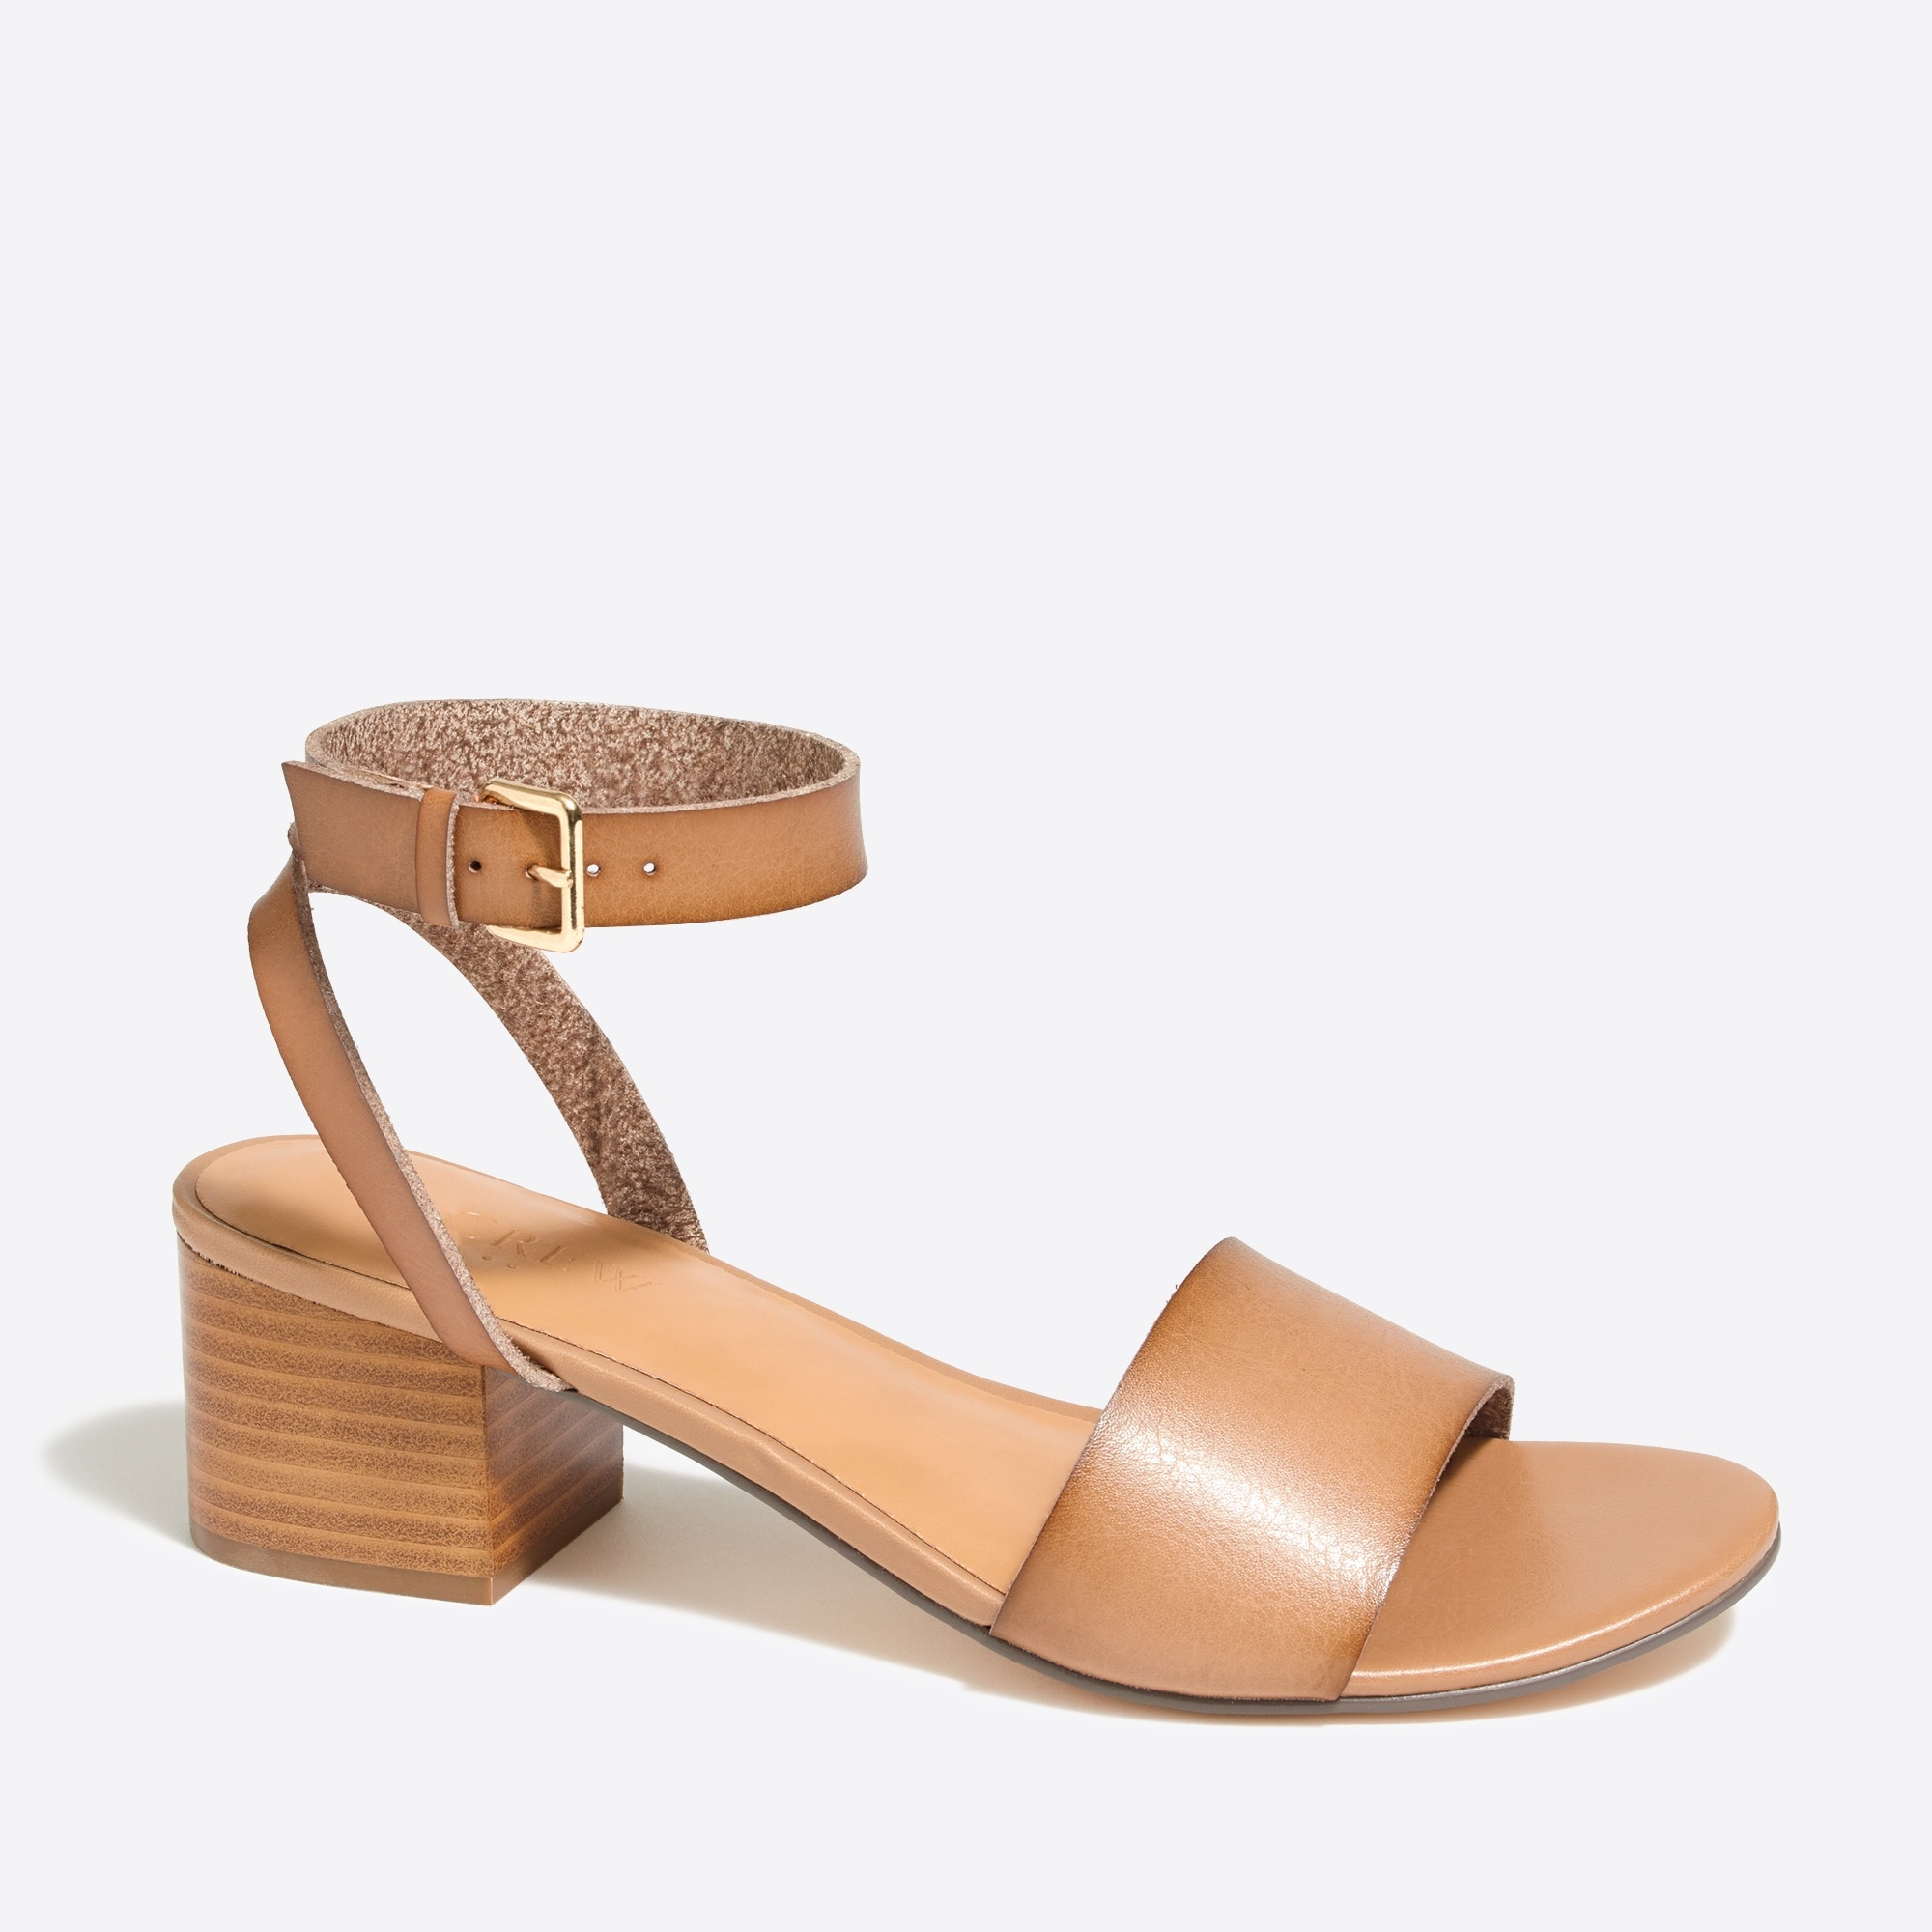 Image 1 for Block-heel sandals